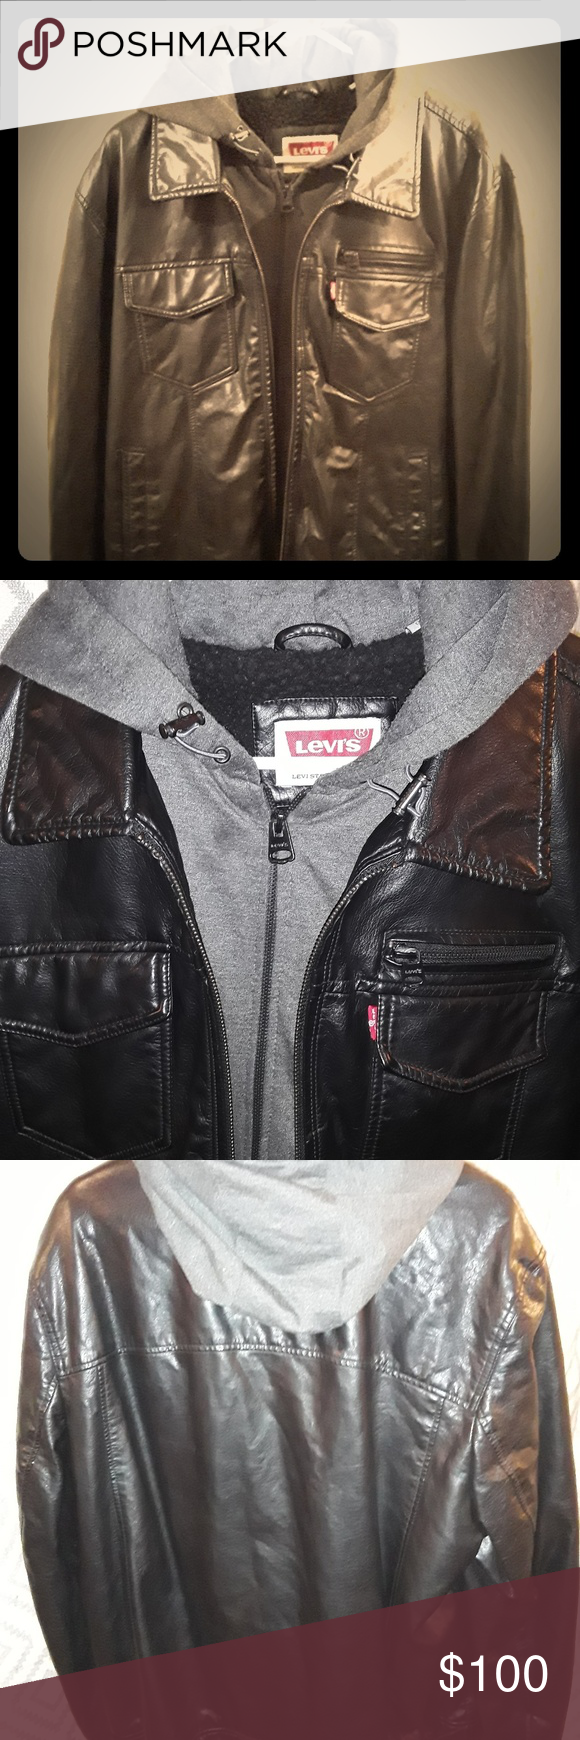 Mens Badass Black Leather Levis Jacket Badass Mens Black Leather Jacket By Levis This Jacket Comes With A Built In Hoodie W Black Leather Levis Jacket Jackets [ 1740 x 580 Pixel ]